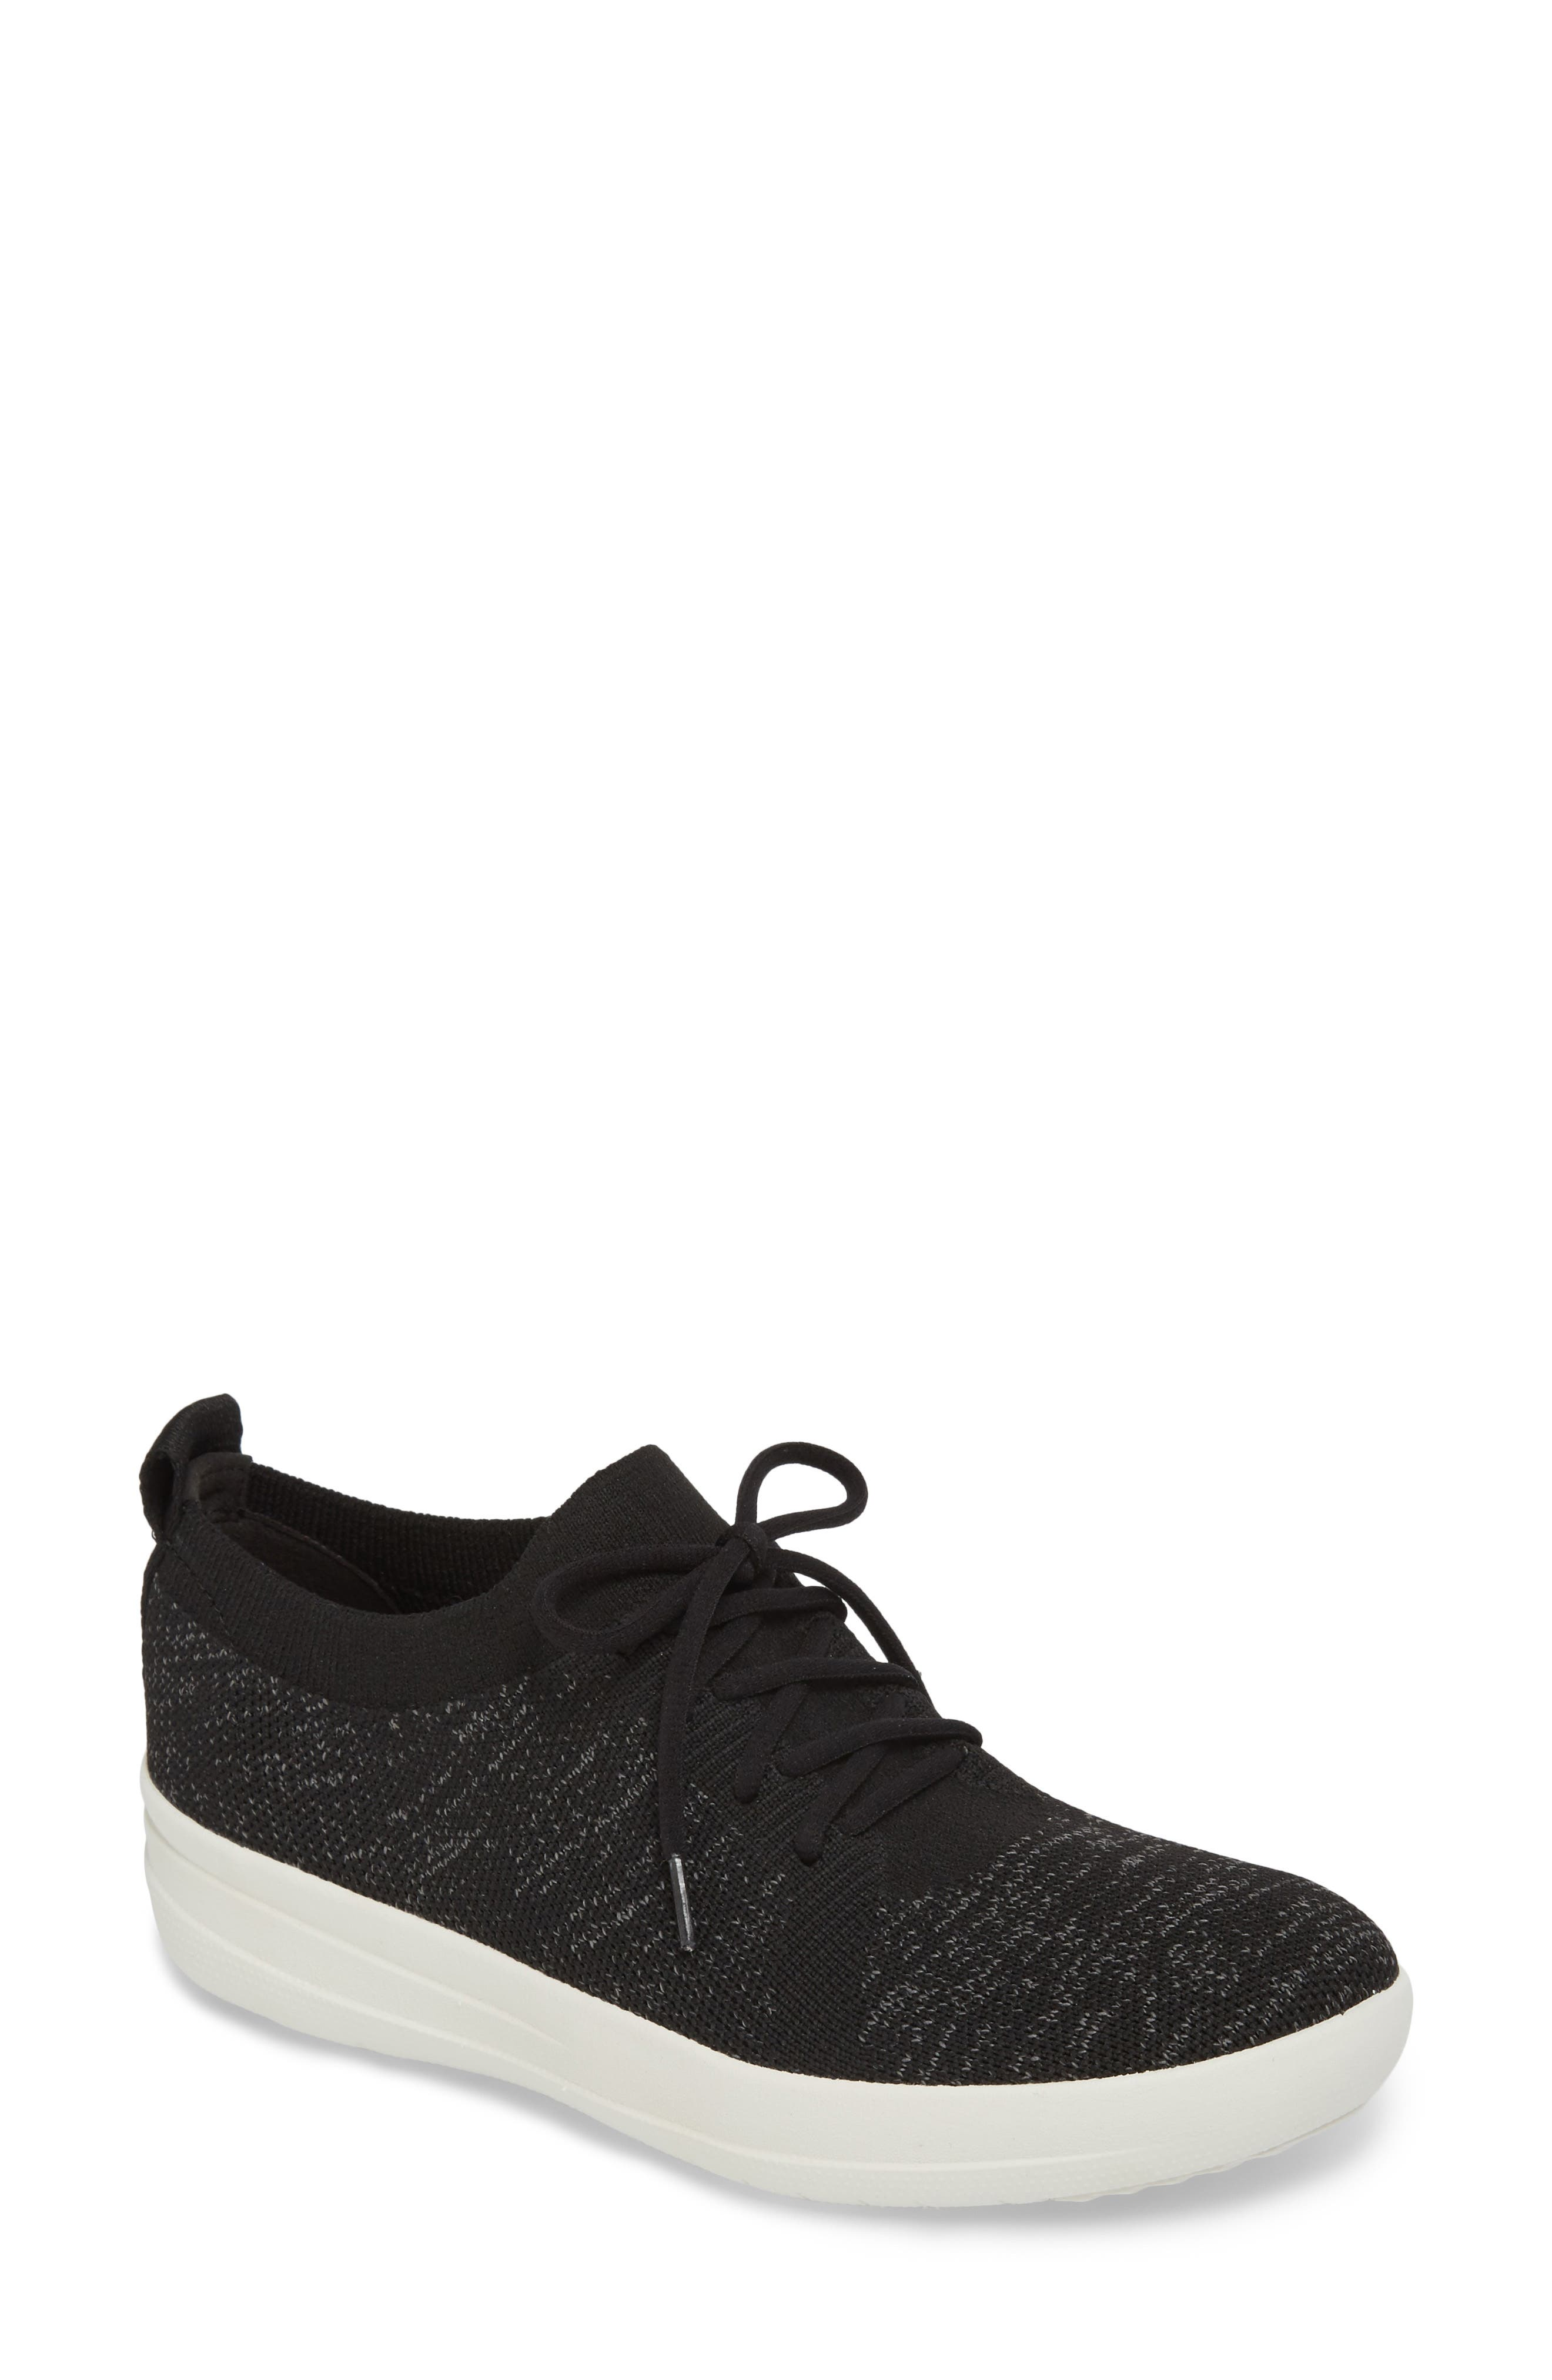 FITFLOP F-Sporty Uberknit<sup>™</sup> Sneaker, Main, color, BLACK